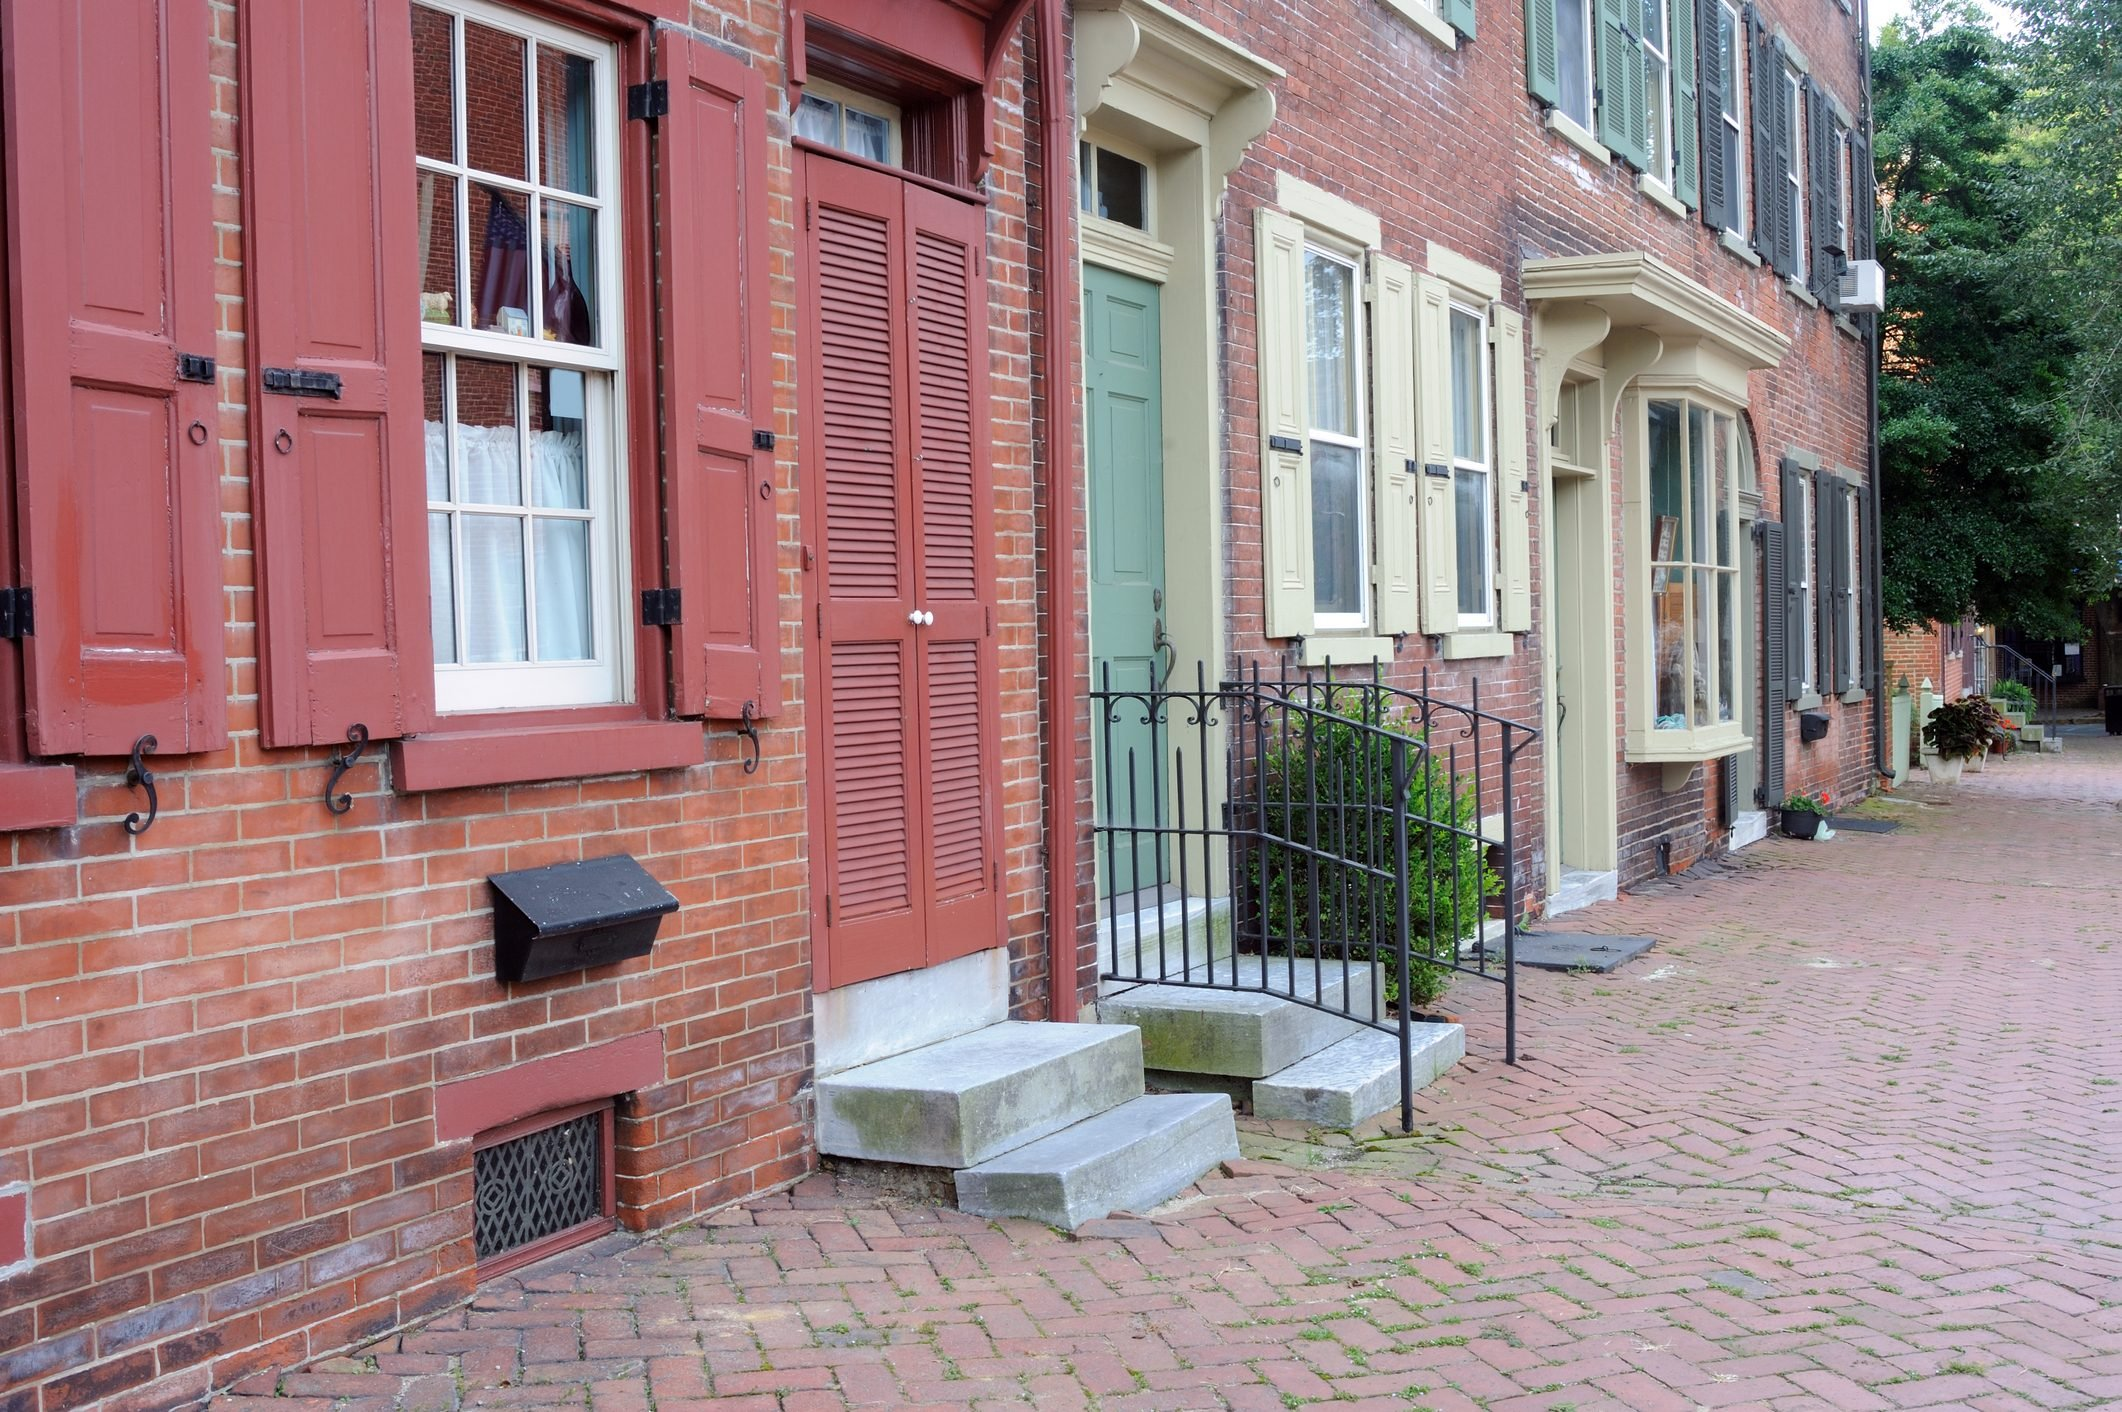 Historic District of New Castle in Delaware